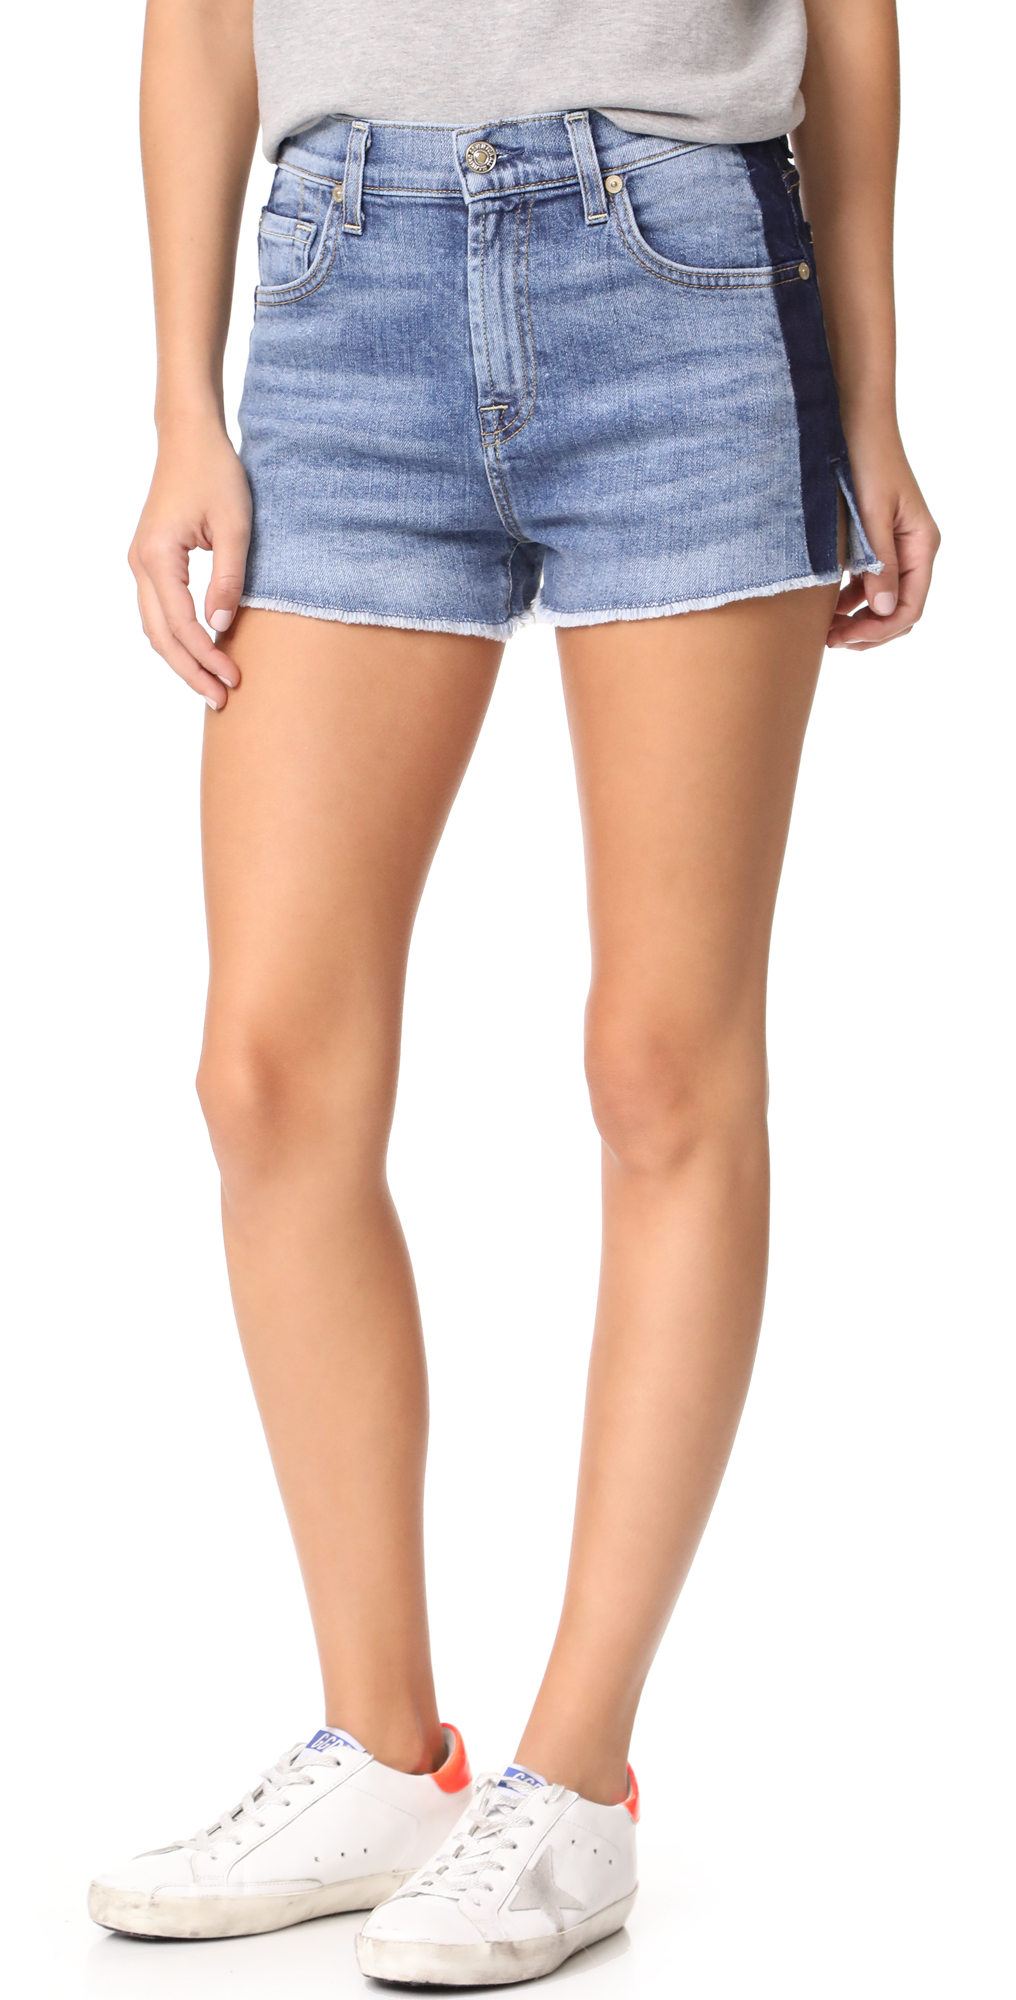 High Waist Cutoff Shorts 7 For All Mankind